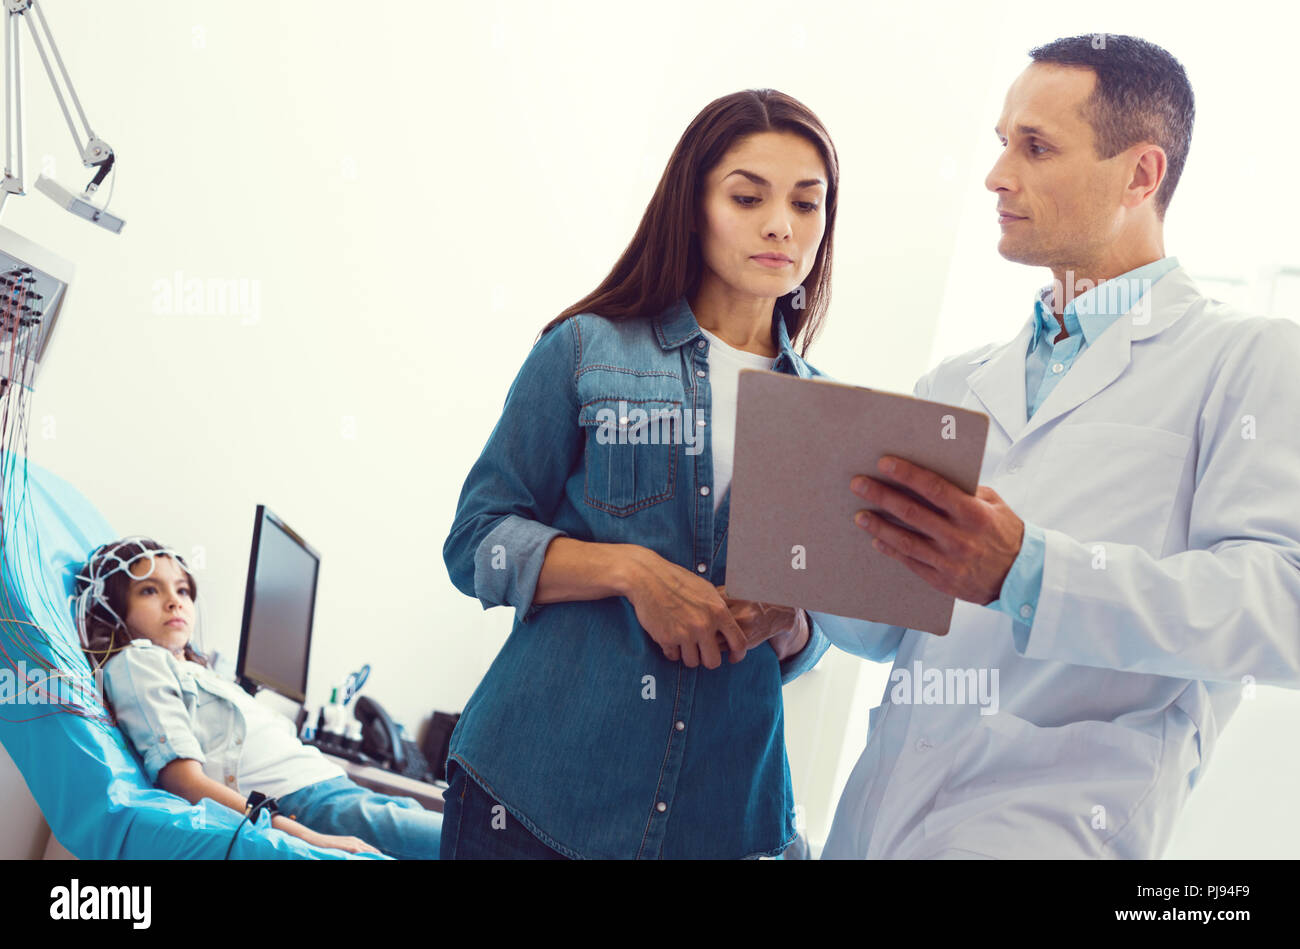 Loving mother and daughter discussing treatment regimen - Stock Image